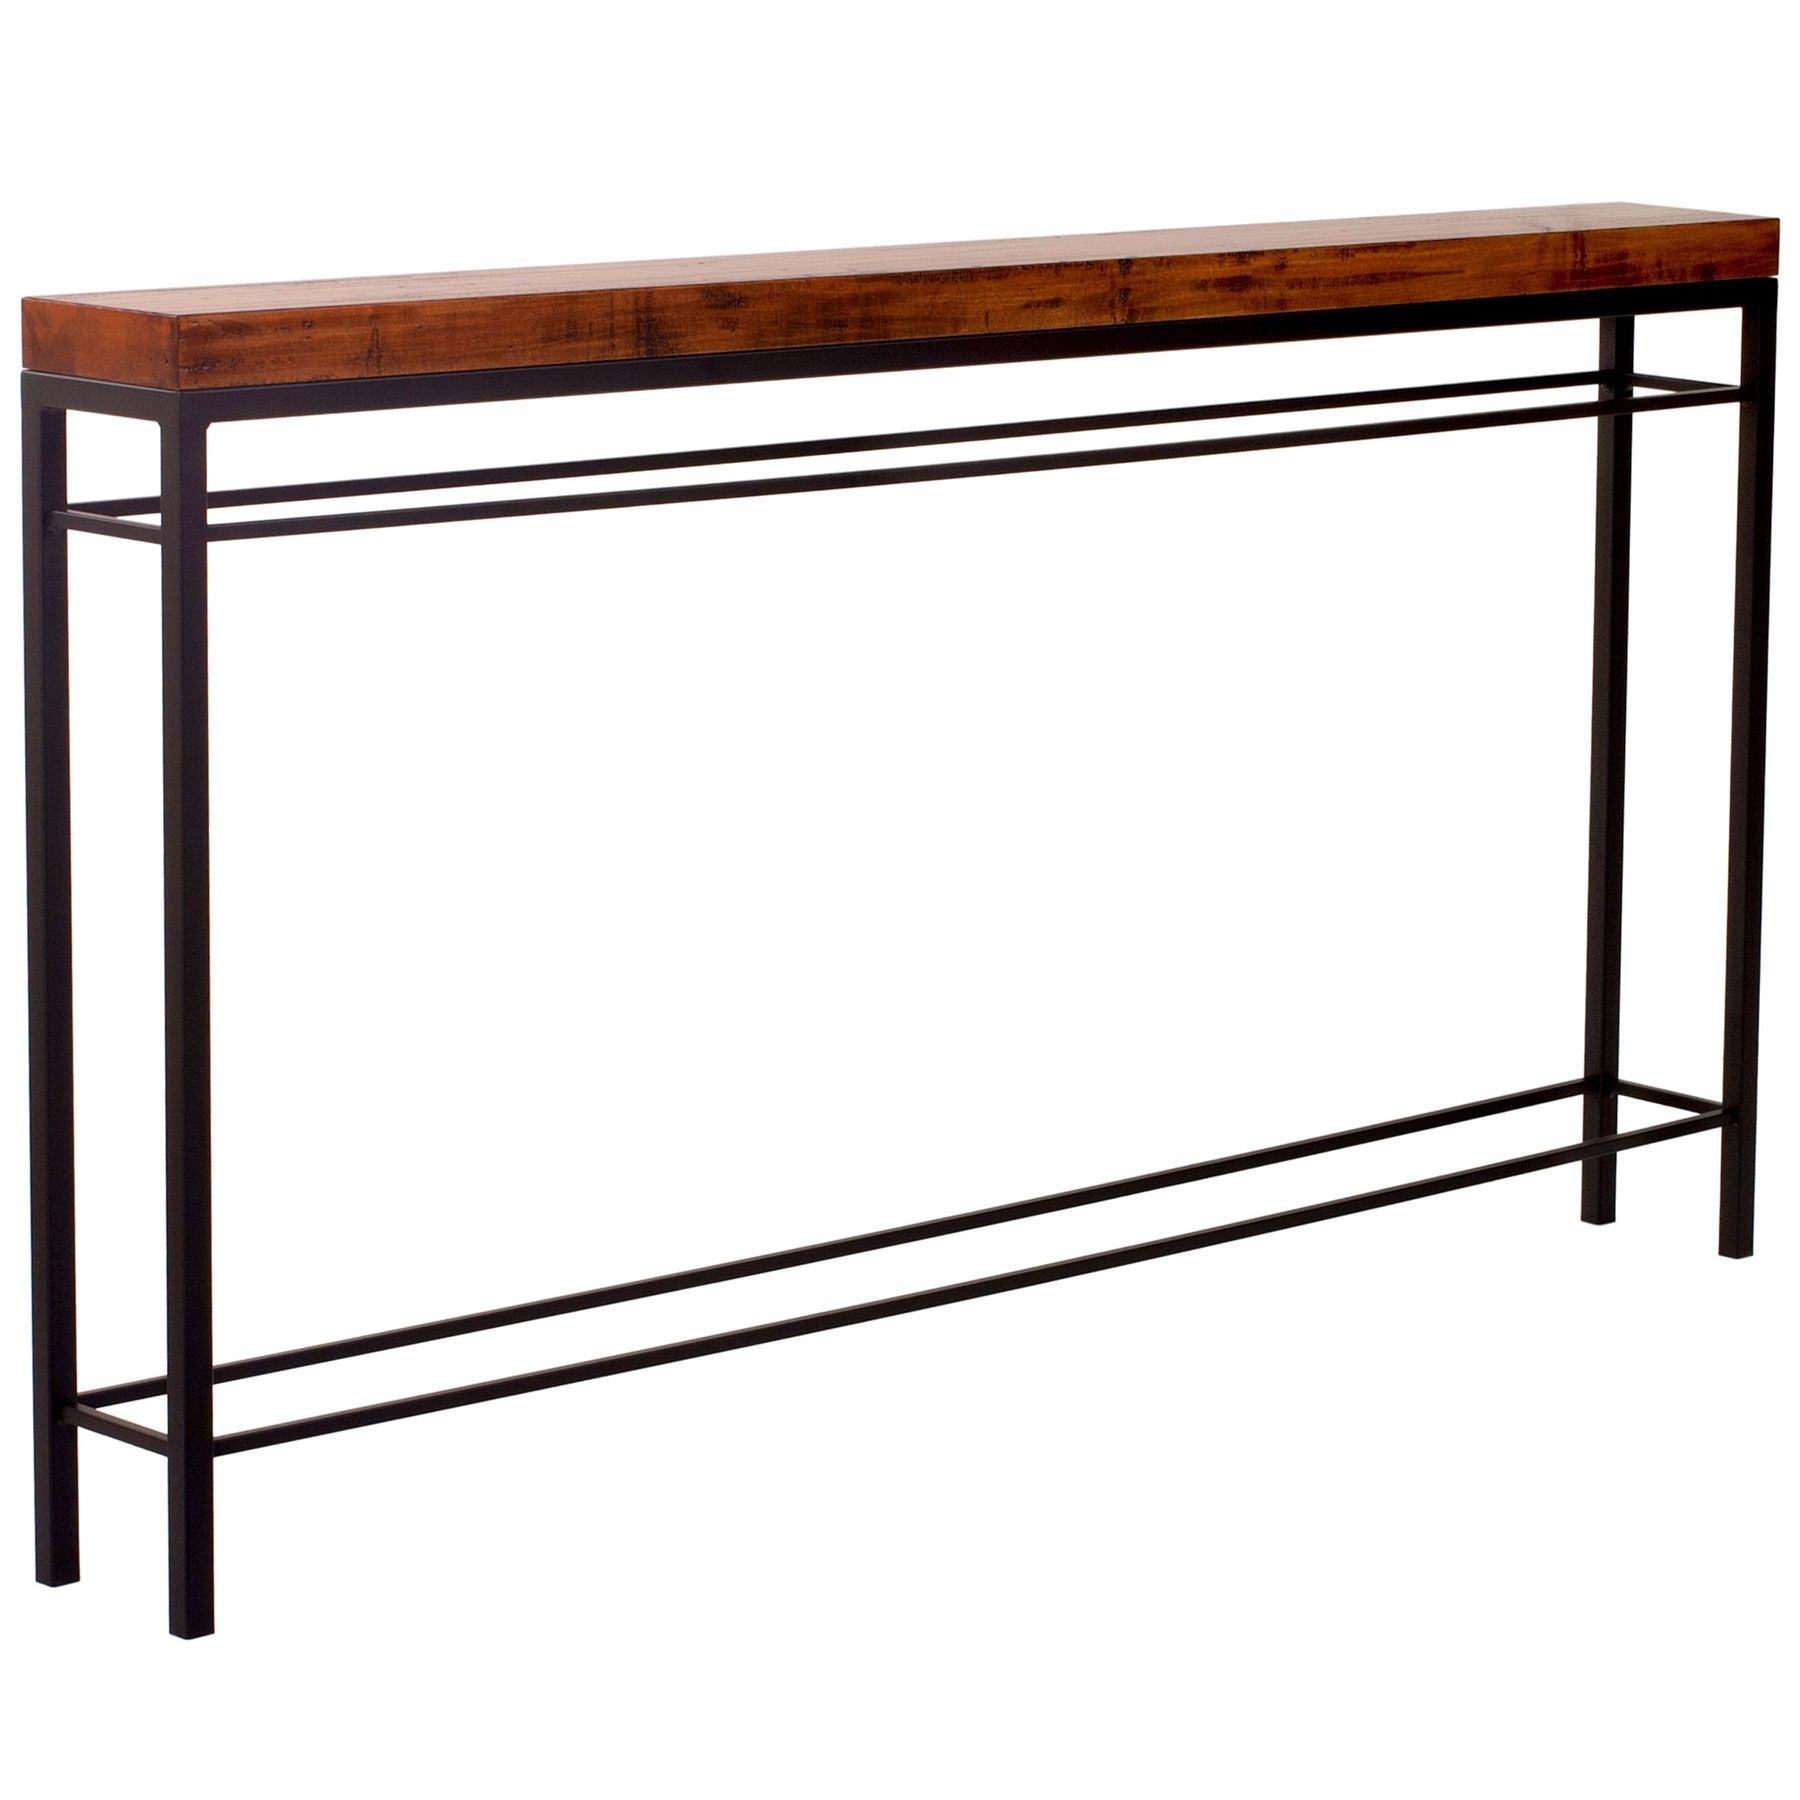 Newhart 70 Wrought Iron Console Table Charleston Forge Iron Console Table Steel Console Table Wrought Iron Console Table